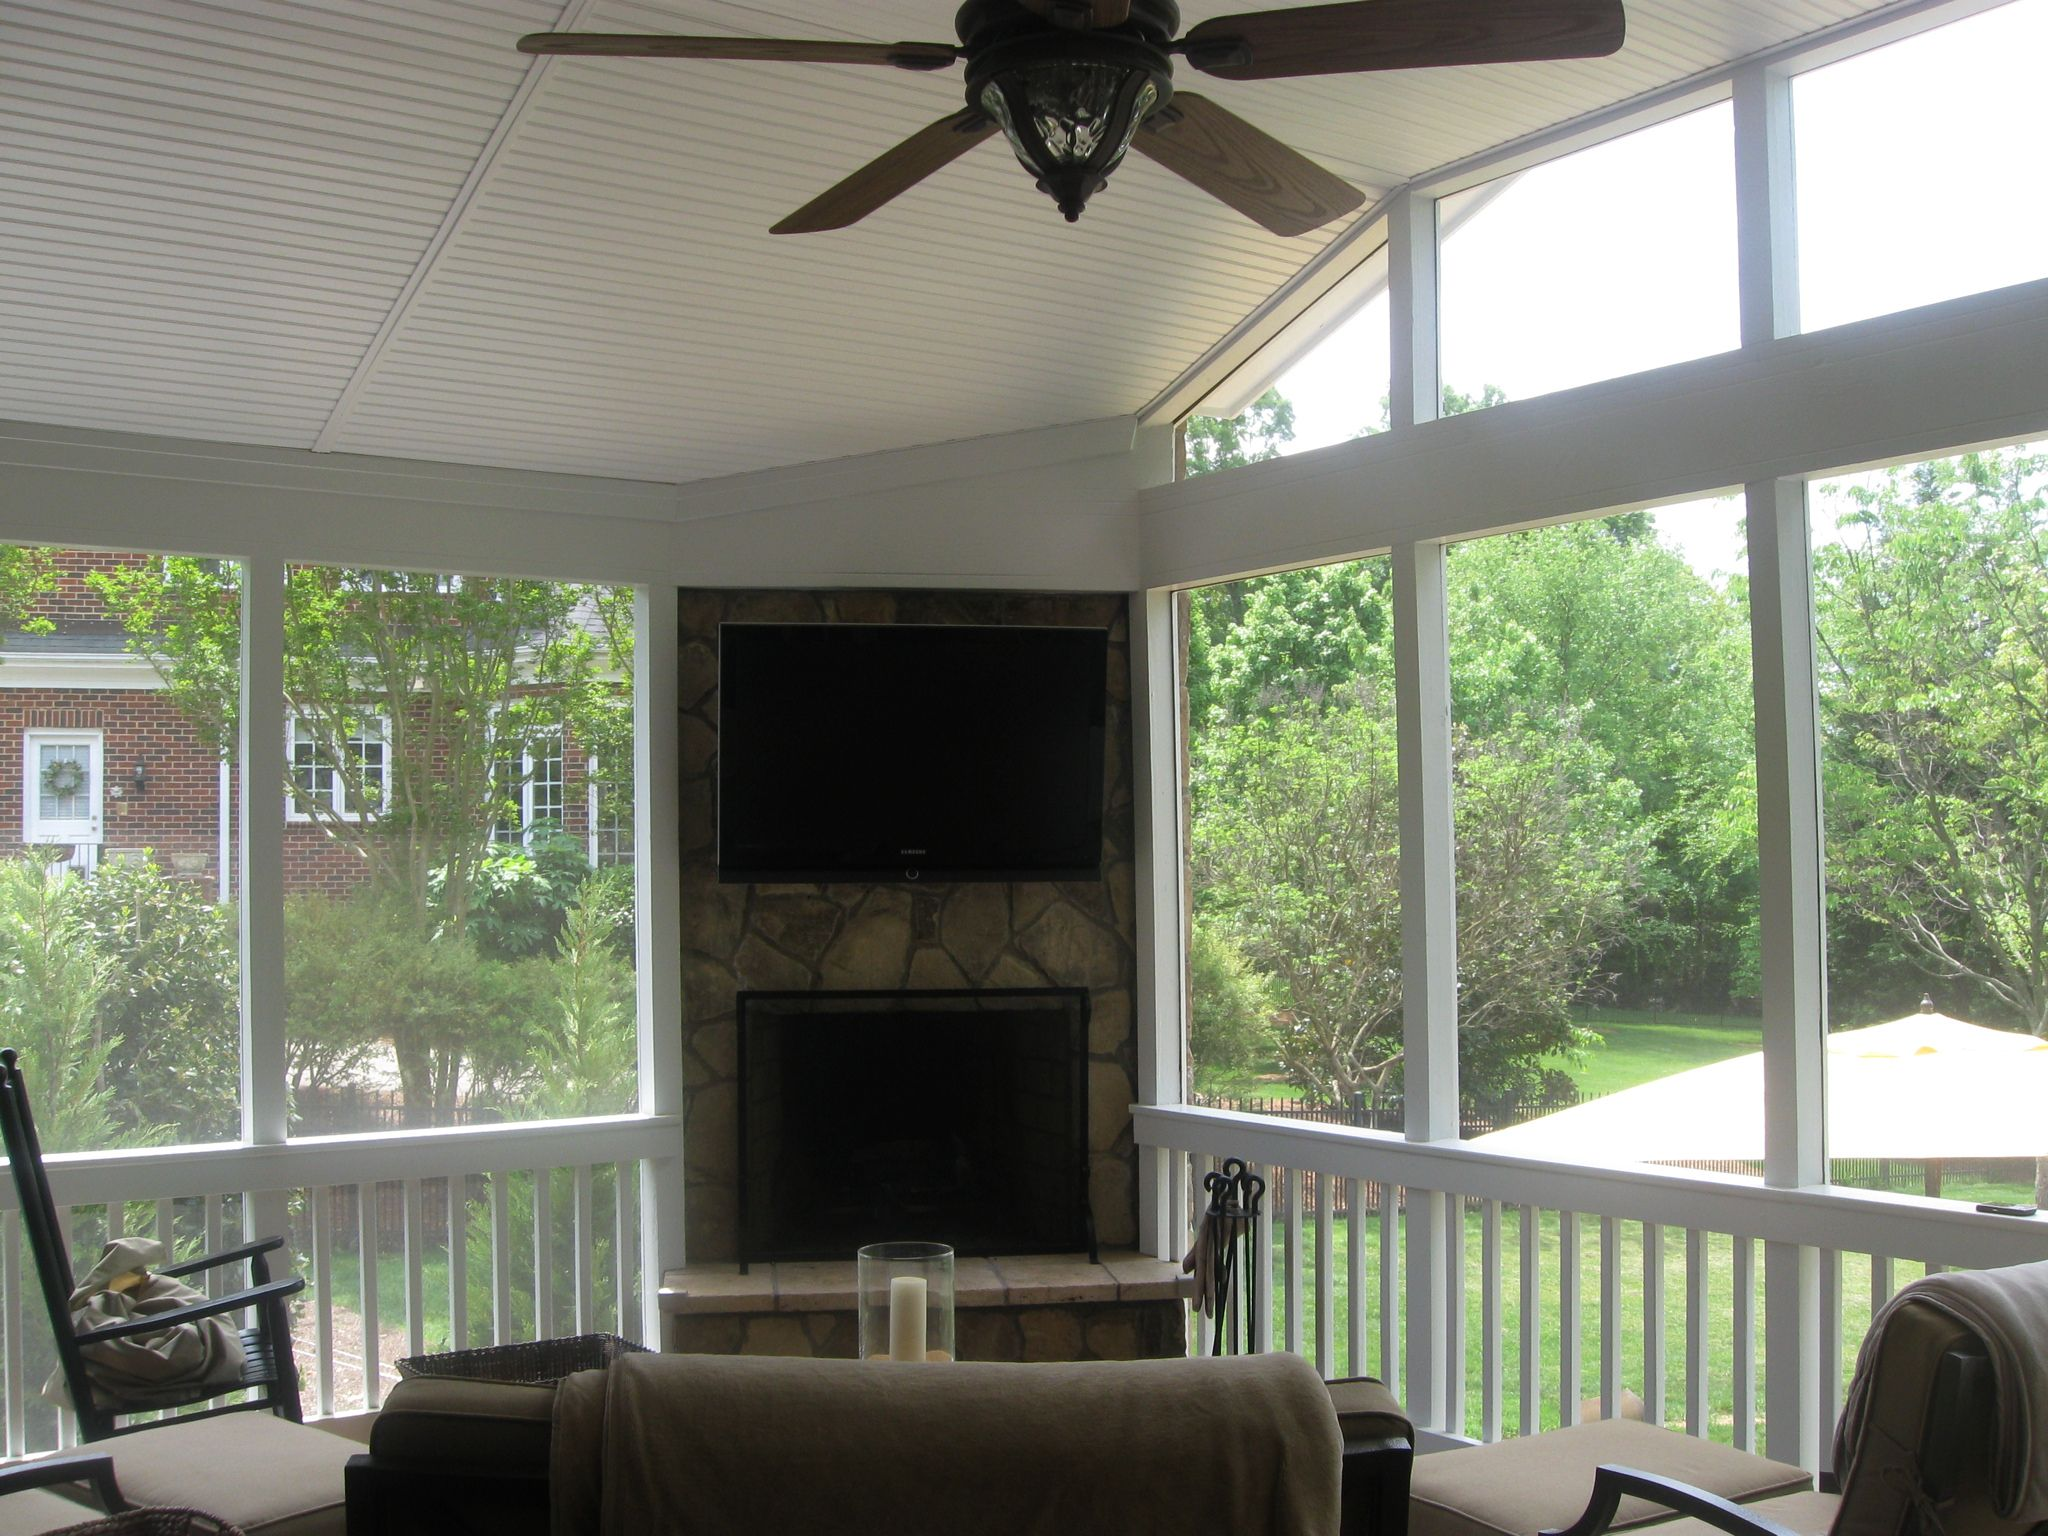 Ideas For Empty Backyard Space : Bright White Themed Empty Space Decorated Using Sun Porches Ideas That